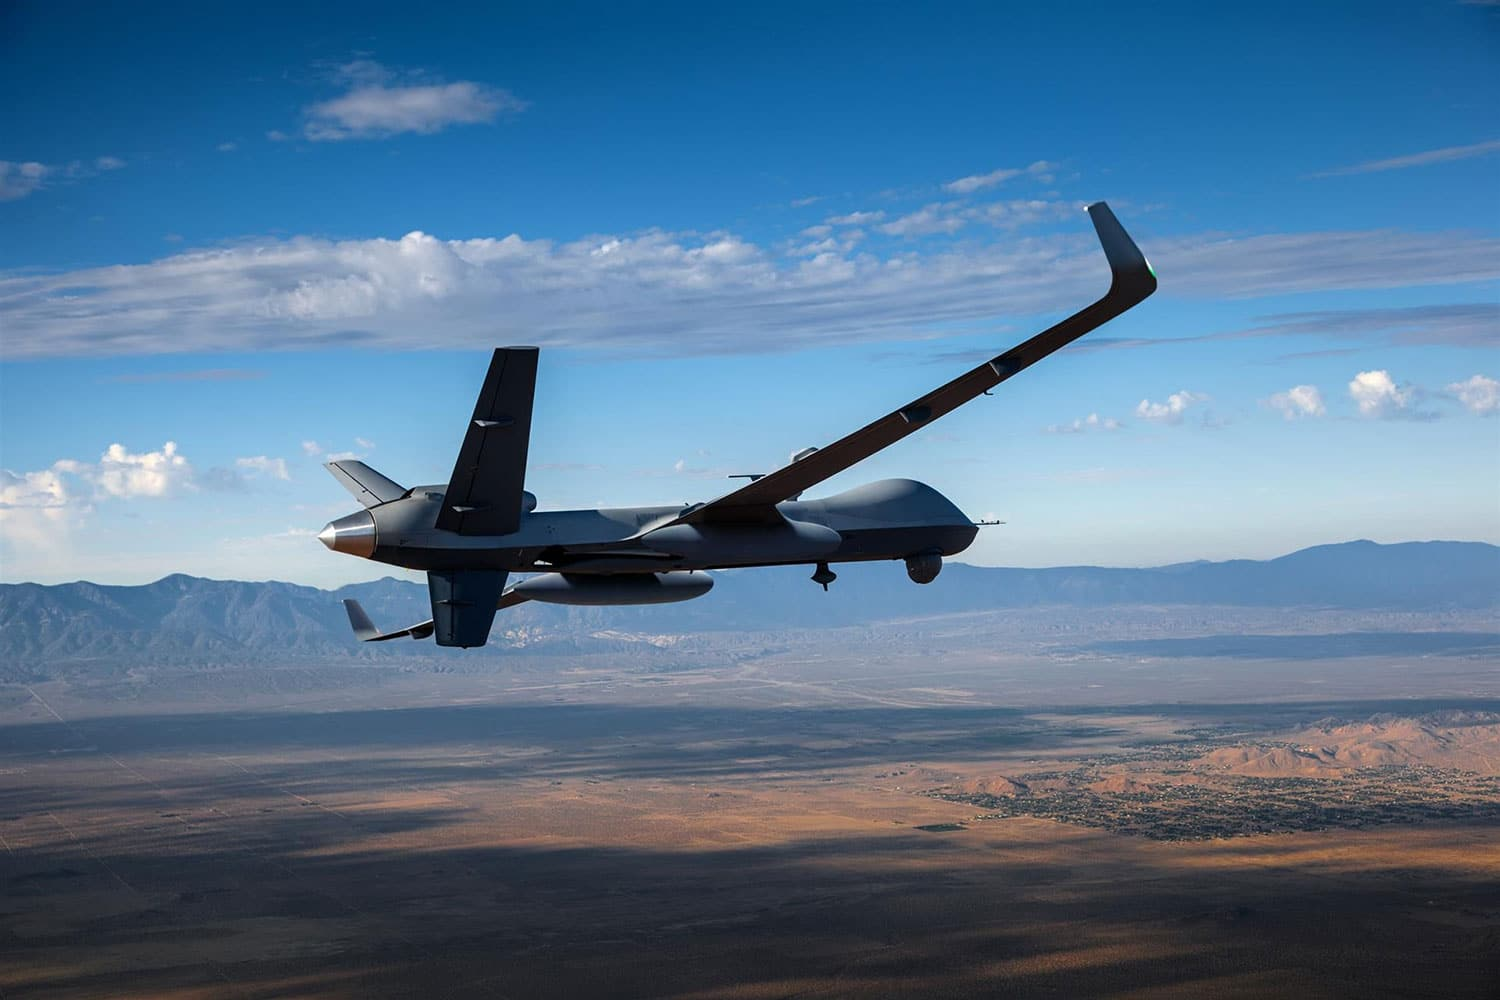 U.S. Navy tests sub-hunting aerial drone off the California coast